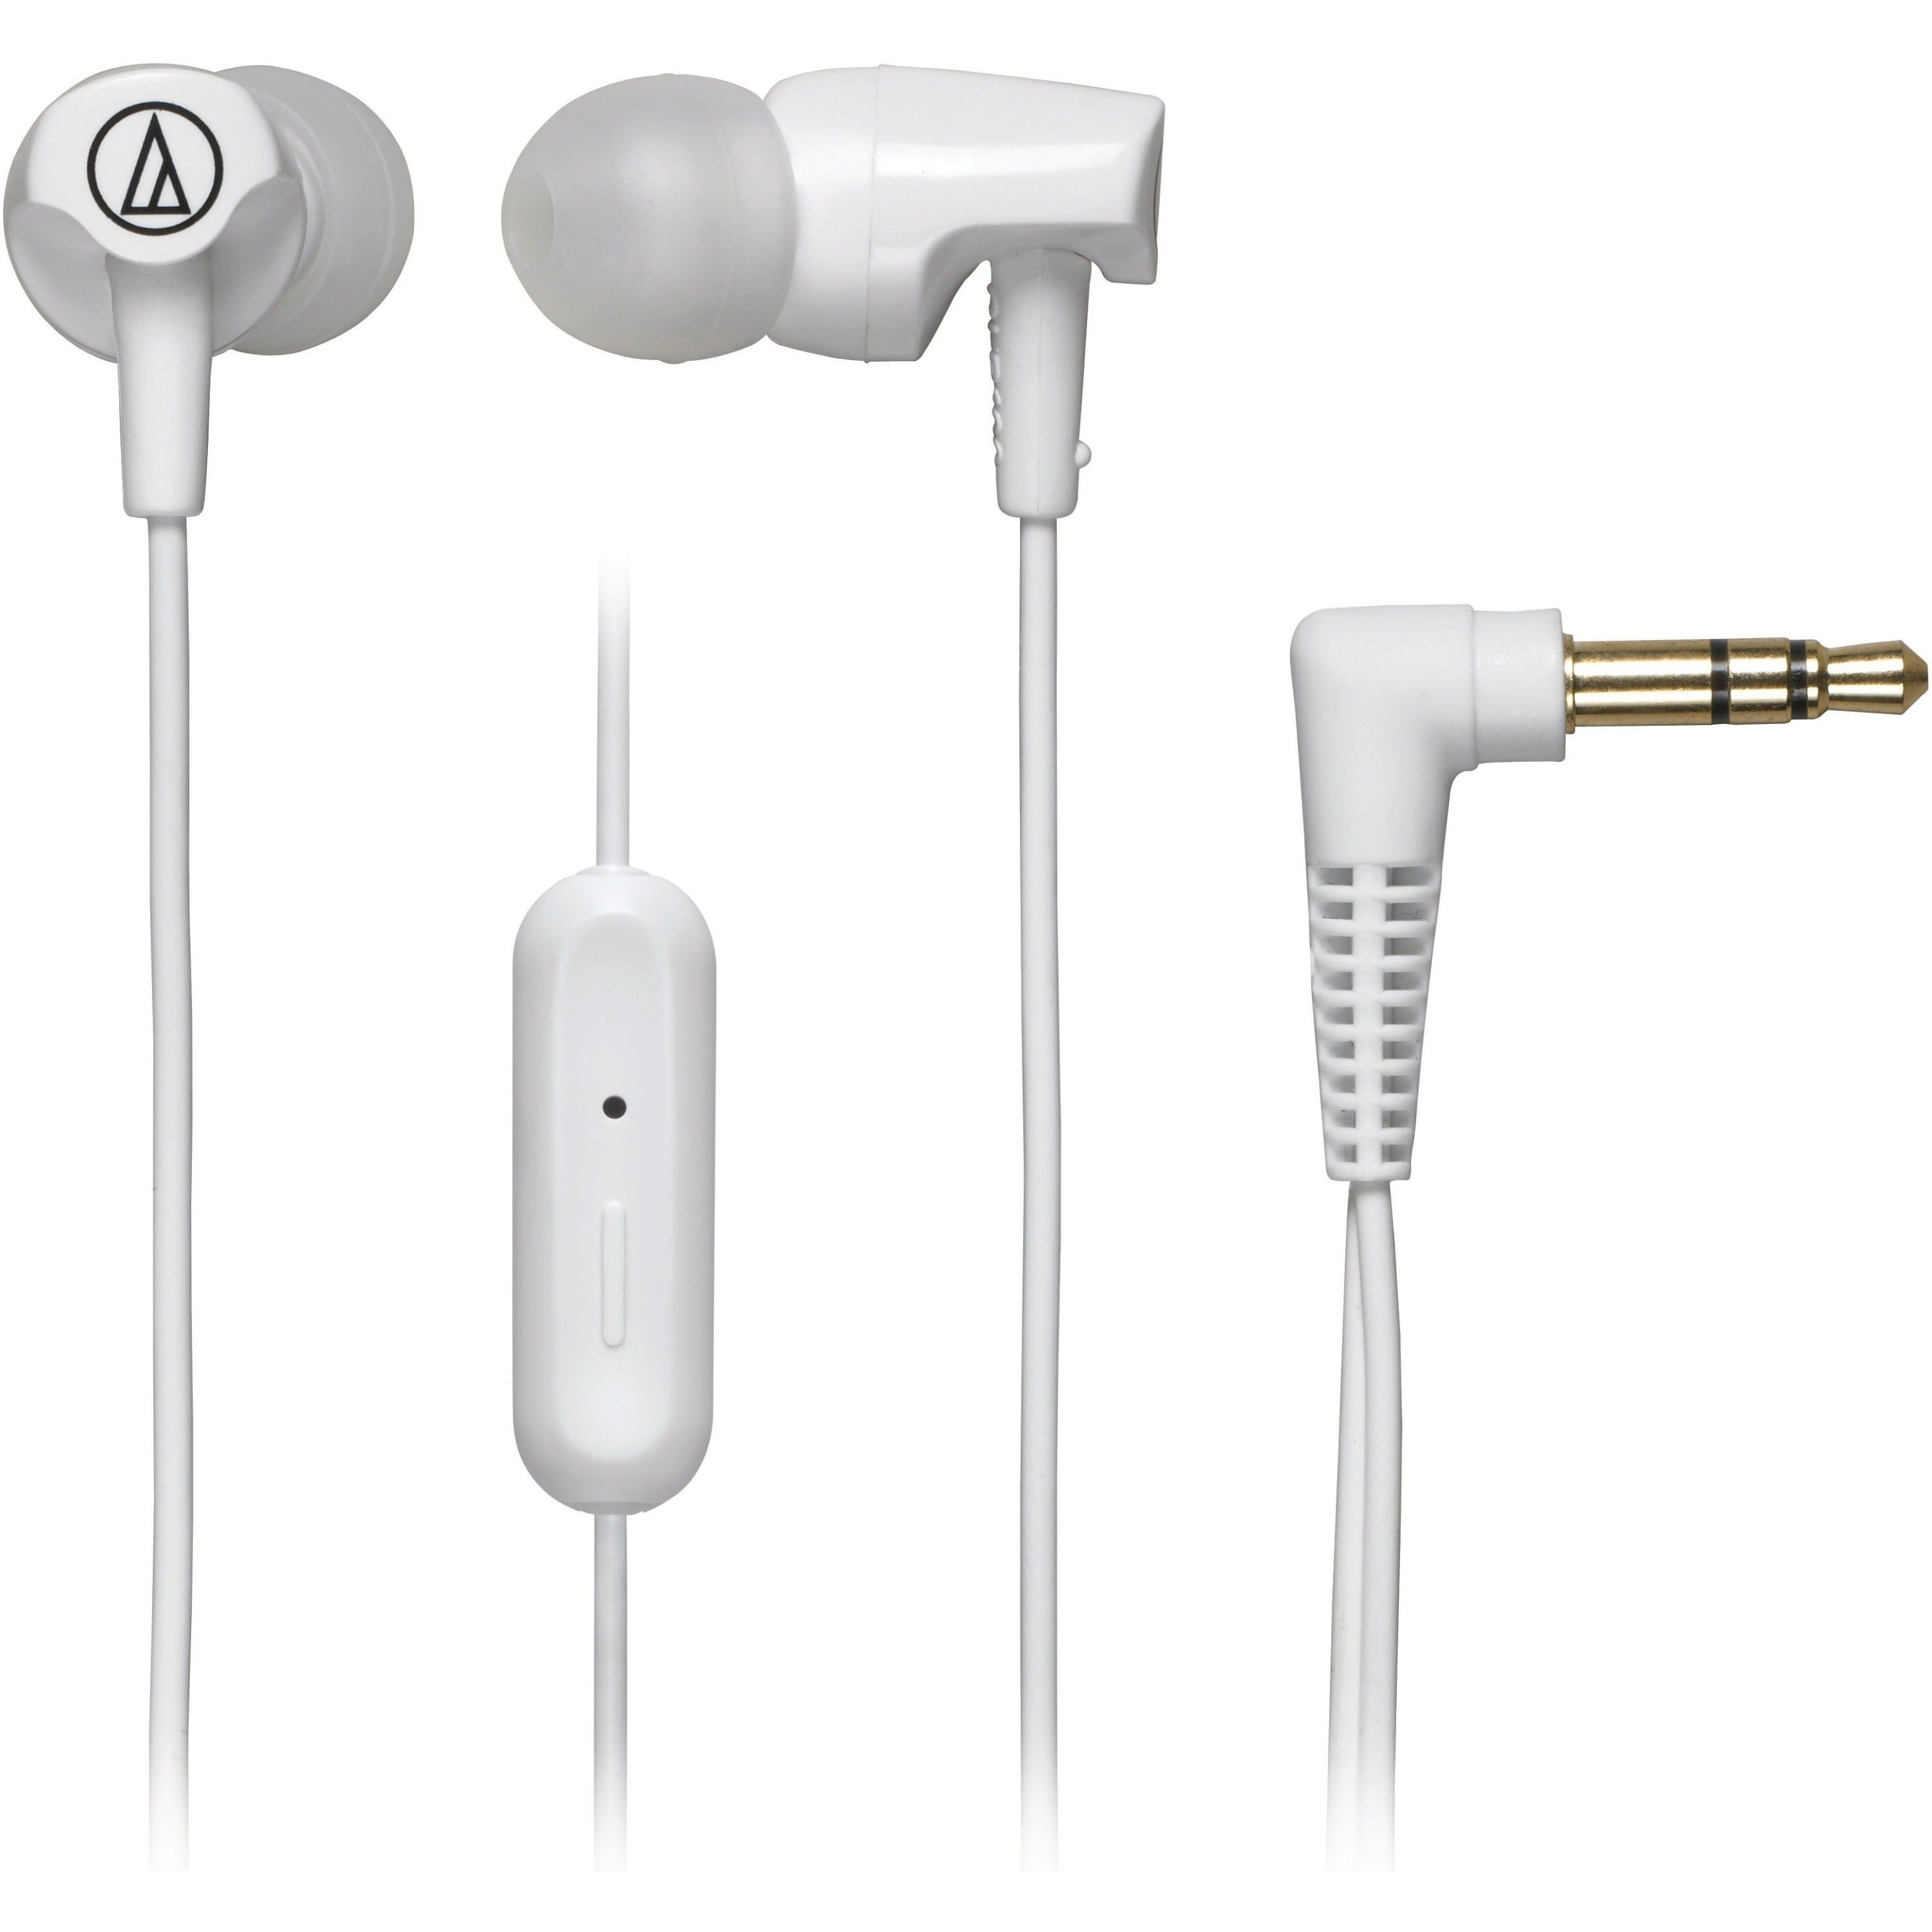 Audio-Technica SonicFuel In-ear Headphones with In-line Mic & Control, White #audioheadphones